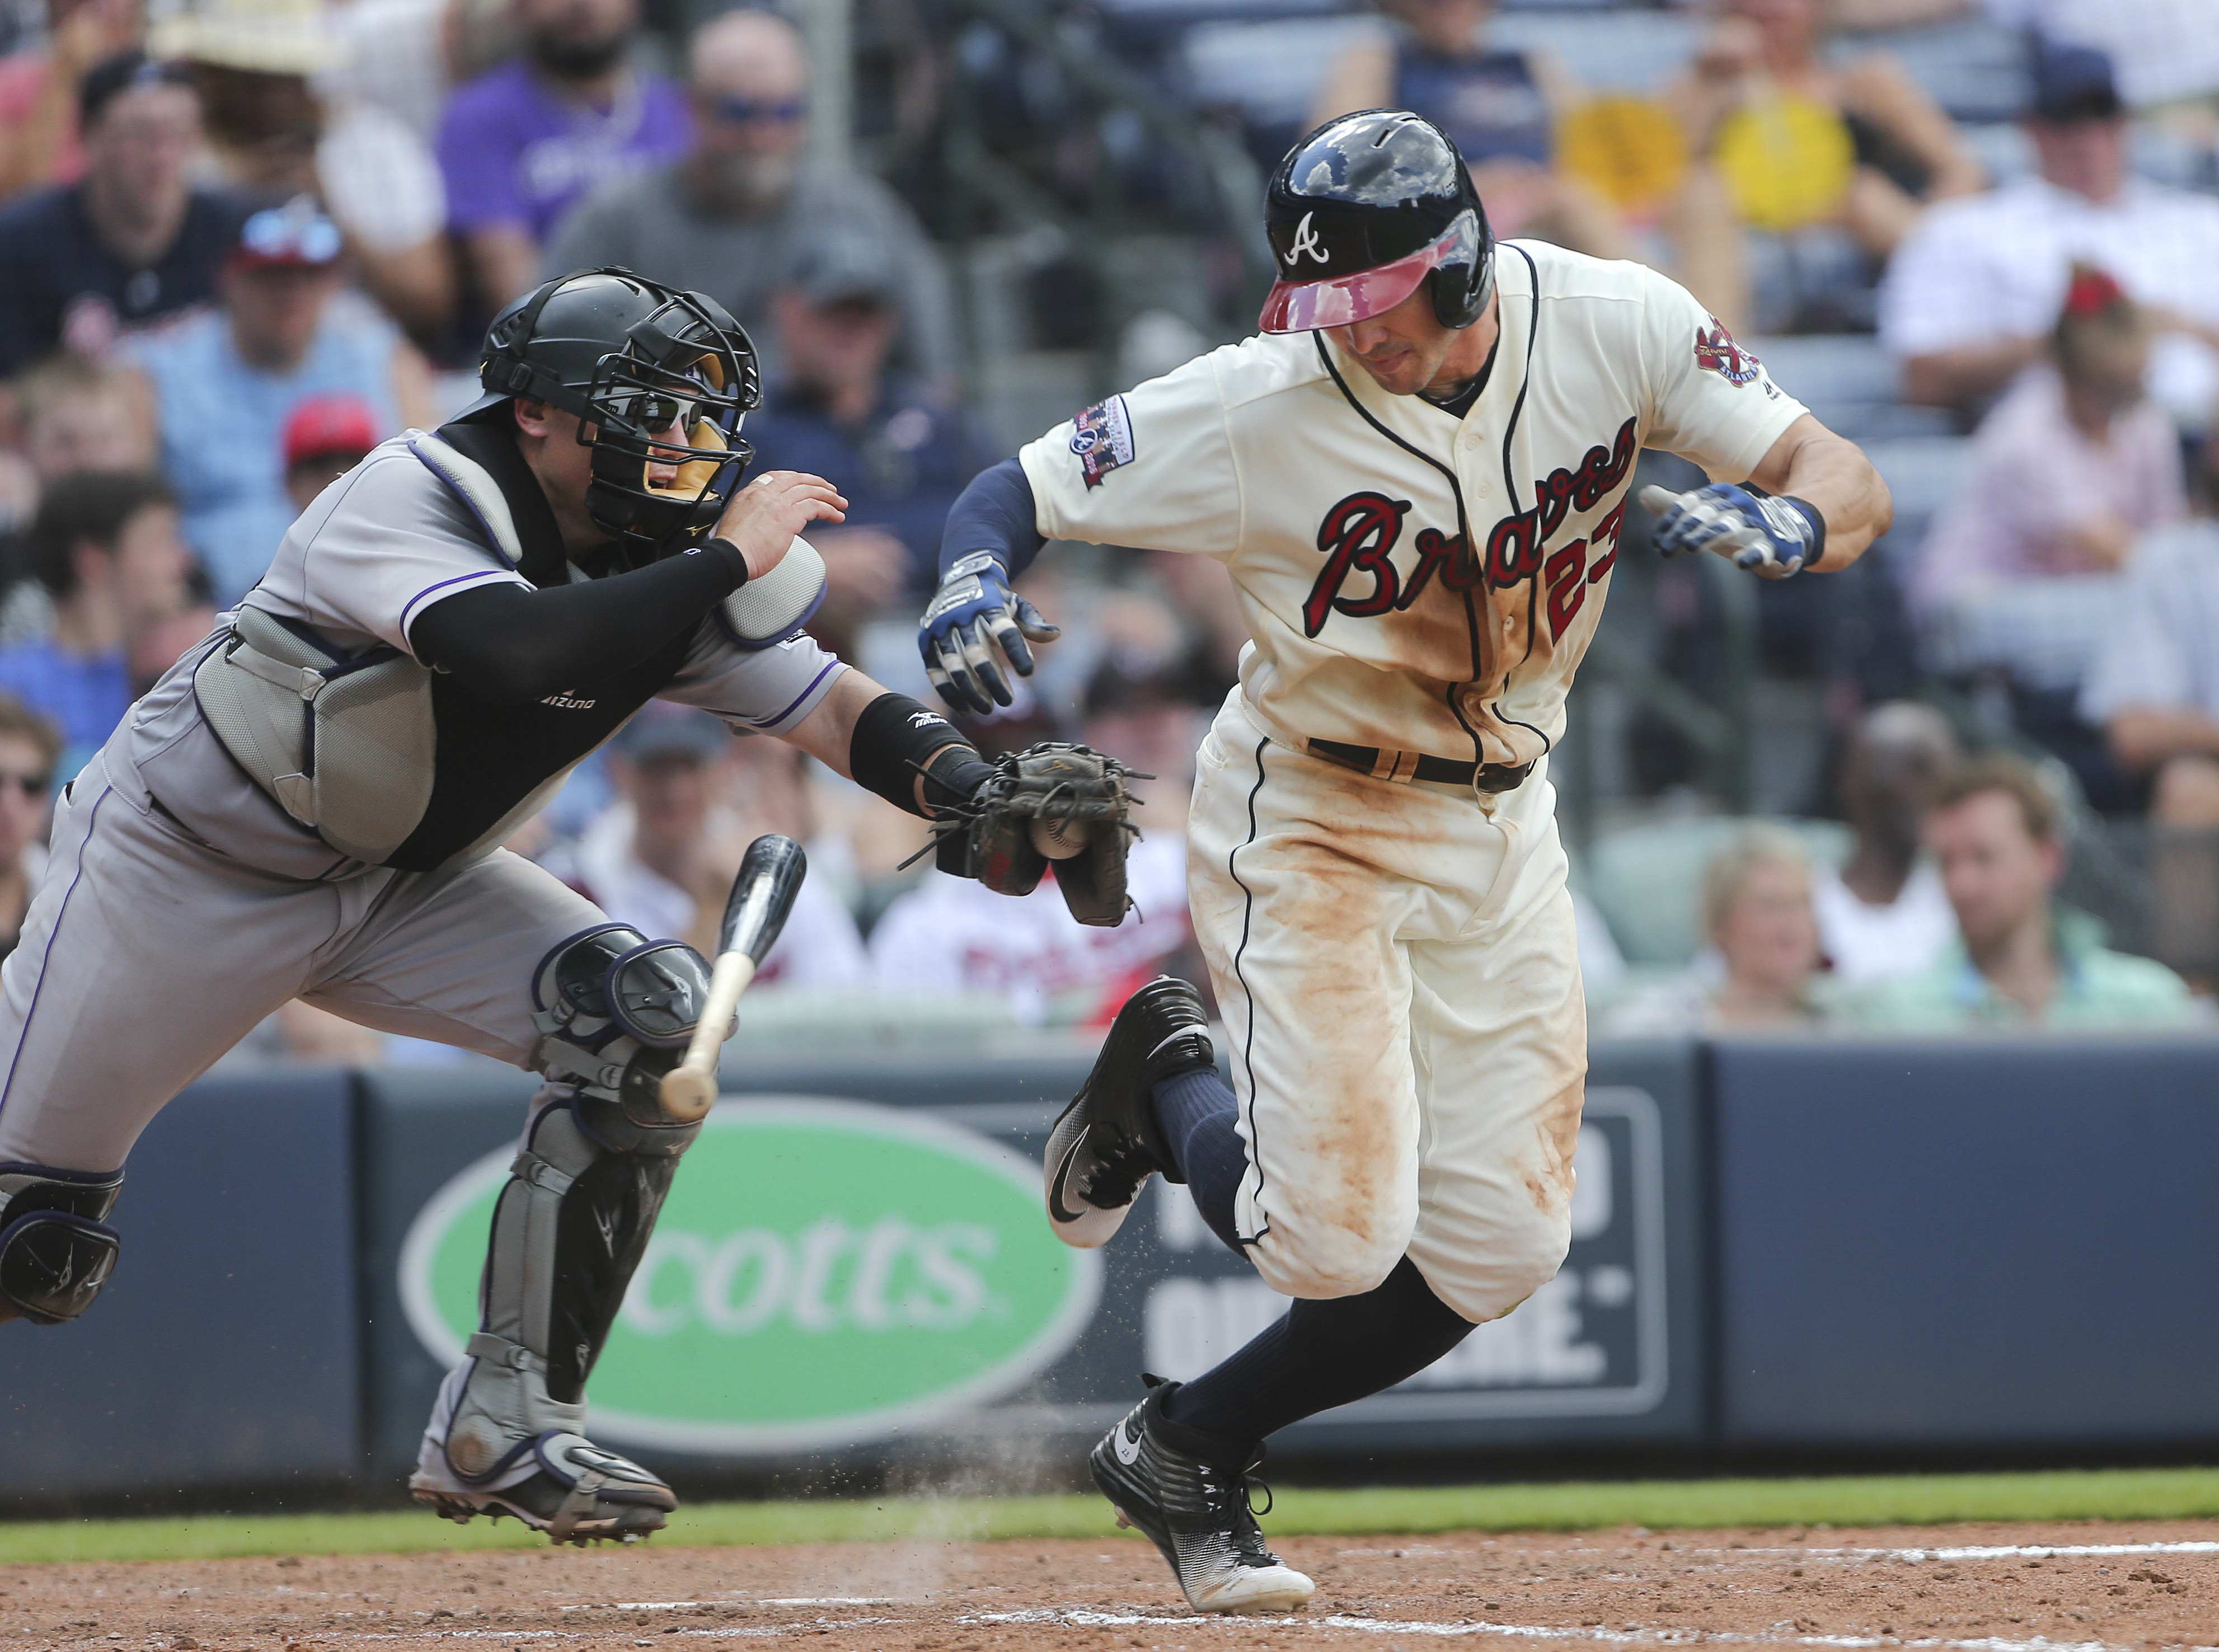 Atlanta Braves' Chase d'Arnaud (23) is chased by Colorado Rockies catcher Tony Wolters (14) as he runs to first base after a dropped third strike in the seventh inning of a baseball game Sunday, July 17, 2016, in Atlanta. d'Arnaud was out at first. (AP Ph